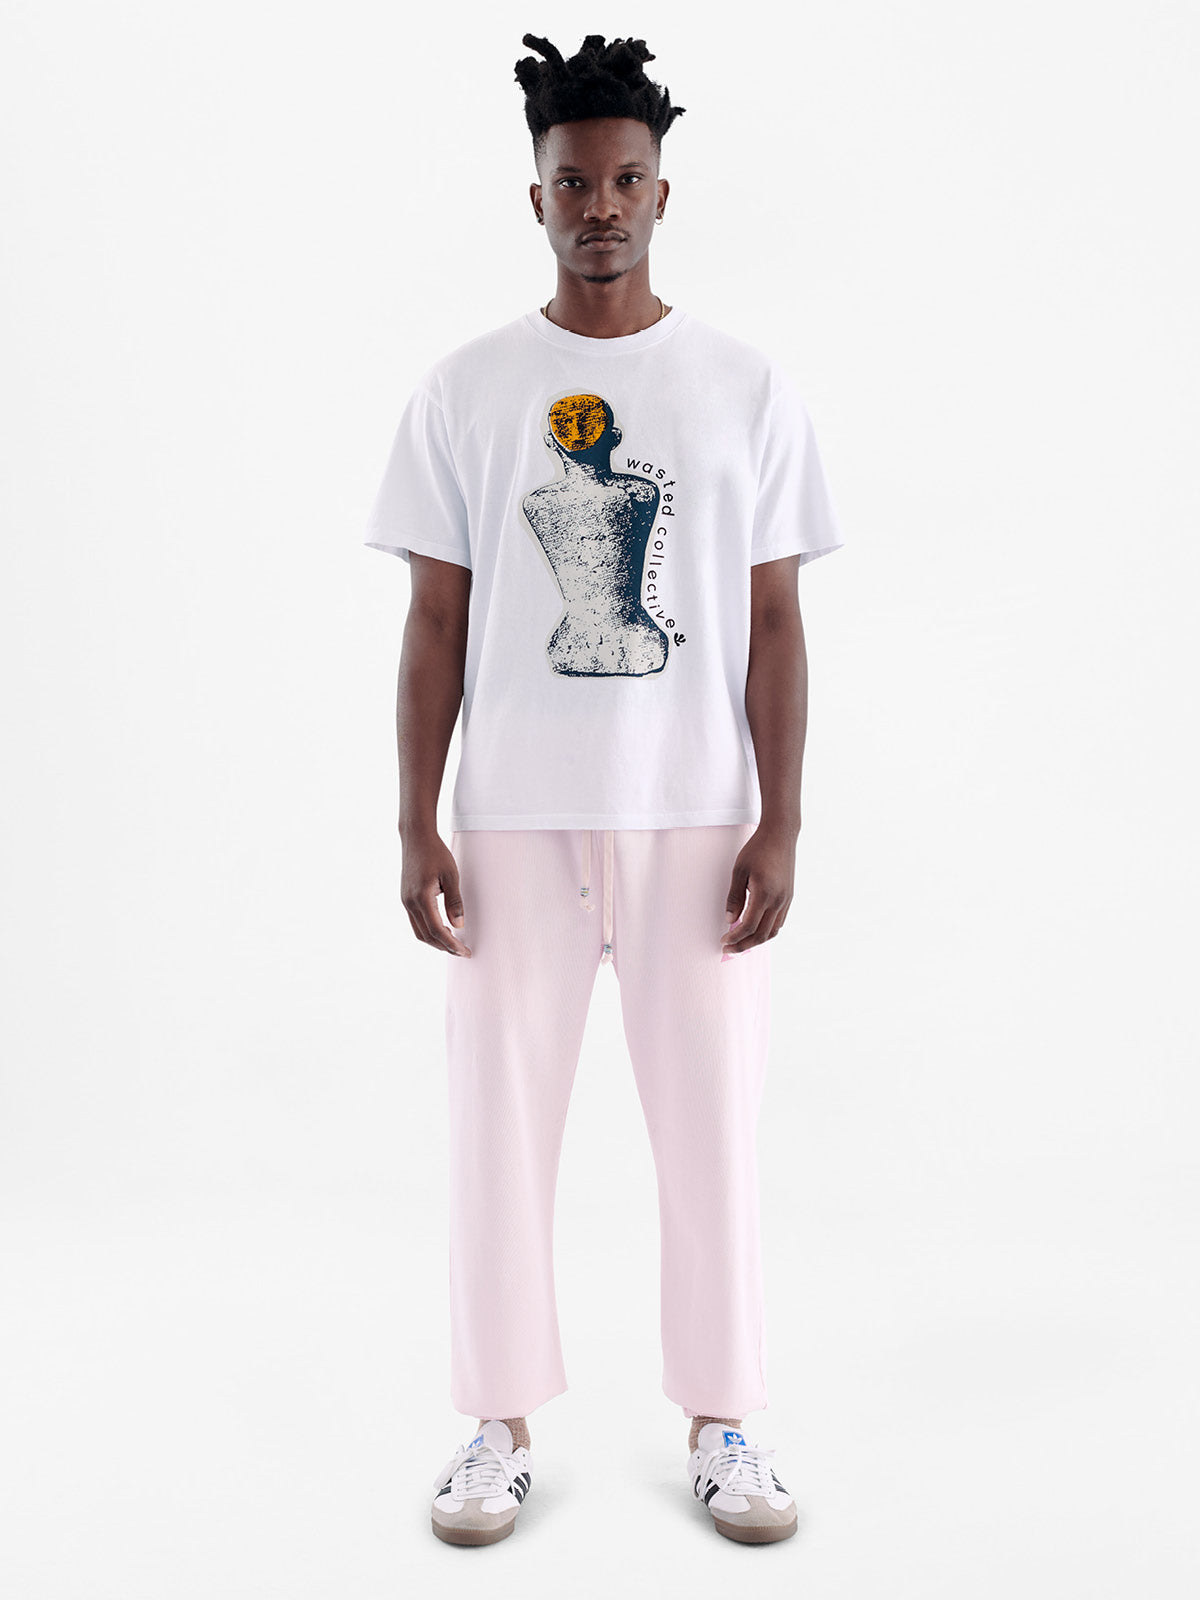 Male model wearing white recycled cotton t-shirt with collage graphic of ancient stone statue with yellow head